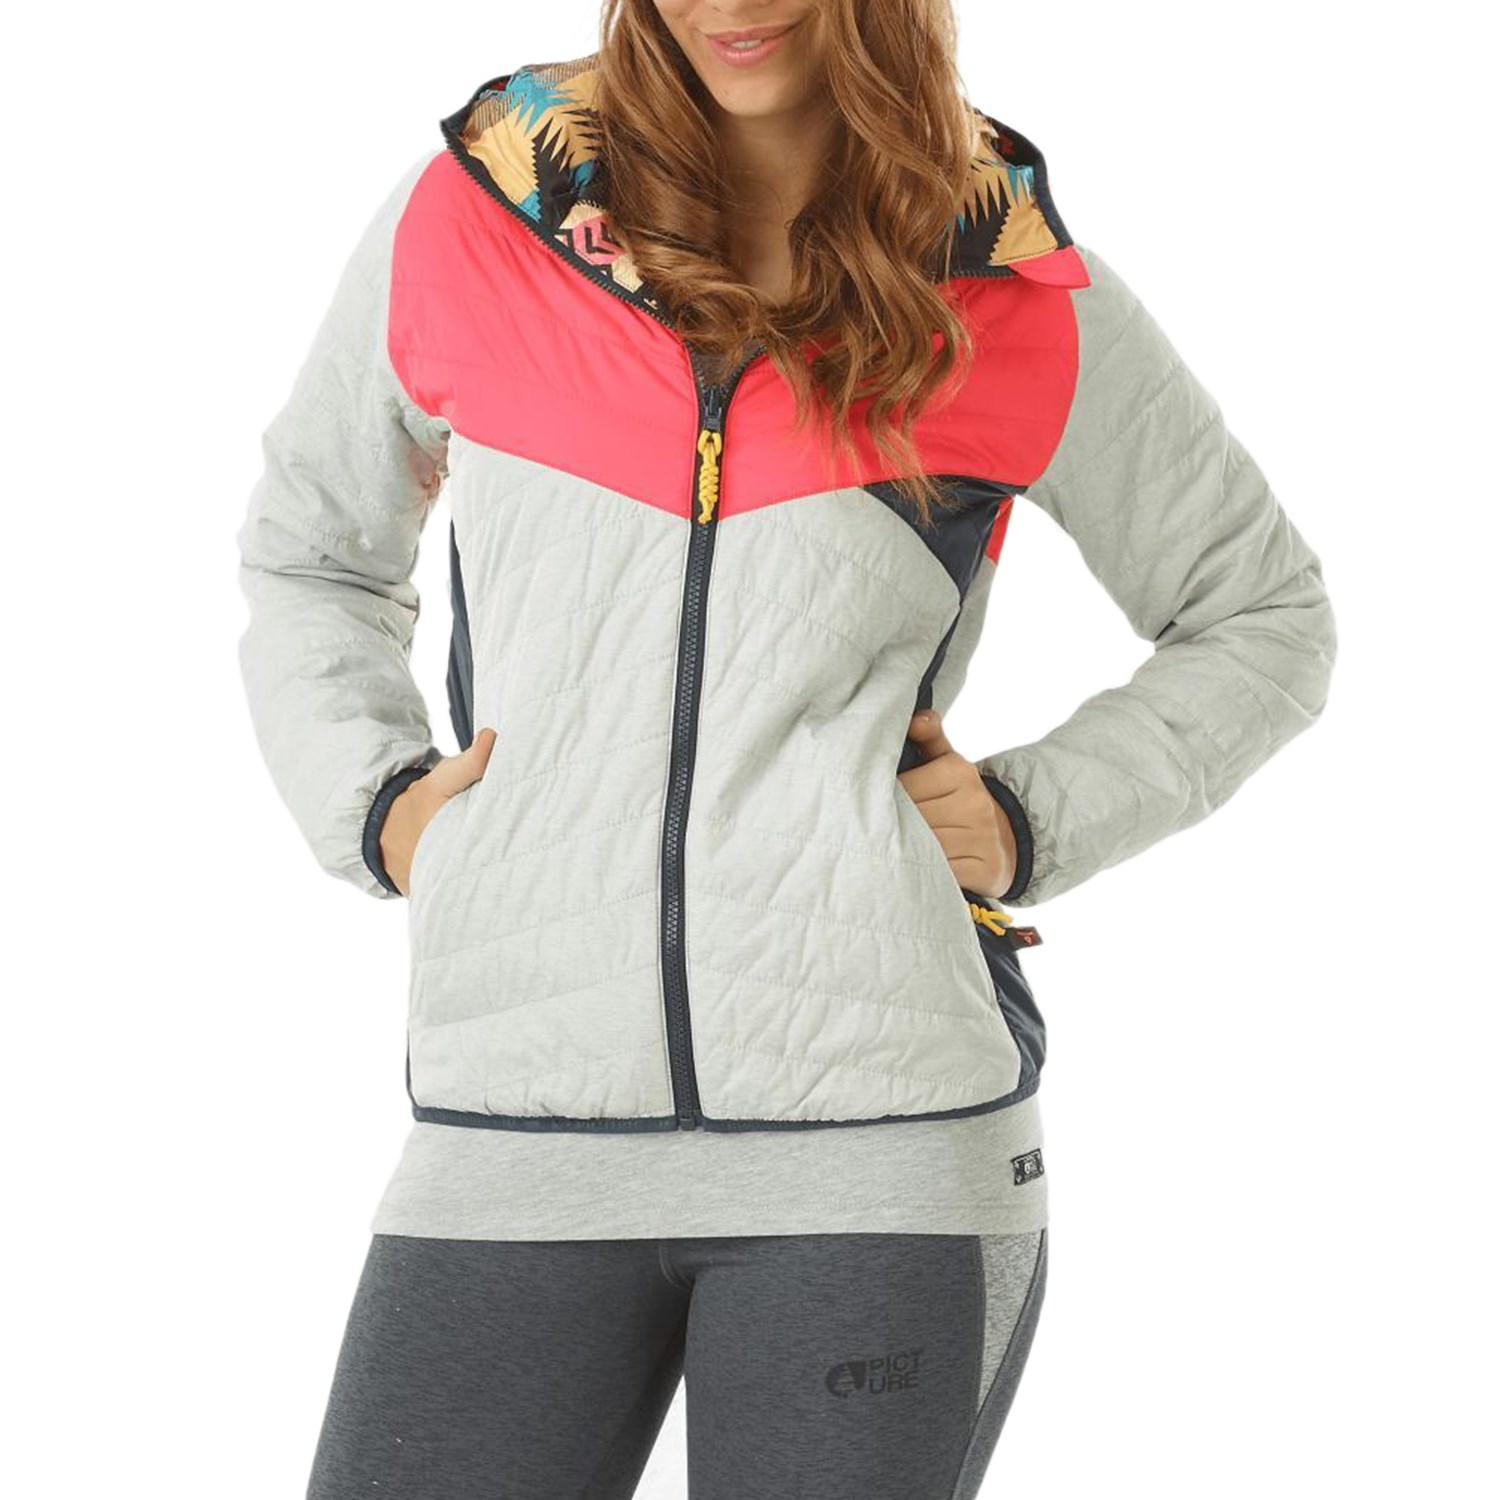 f7abcd4170 Picture Organic Chloe Reversible Jacket - Women's